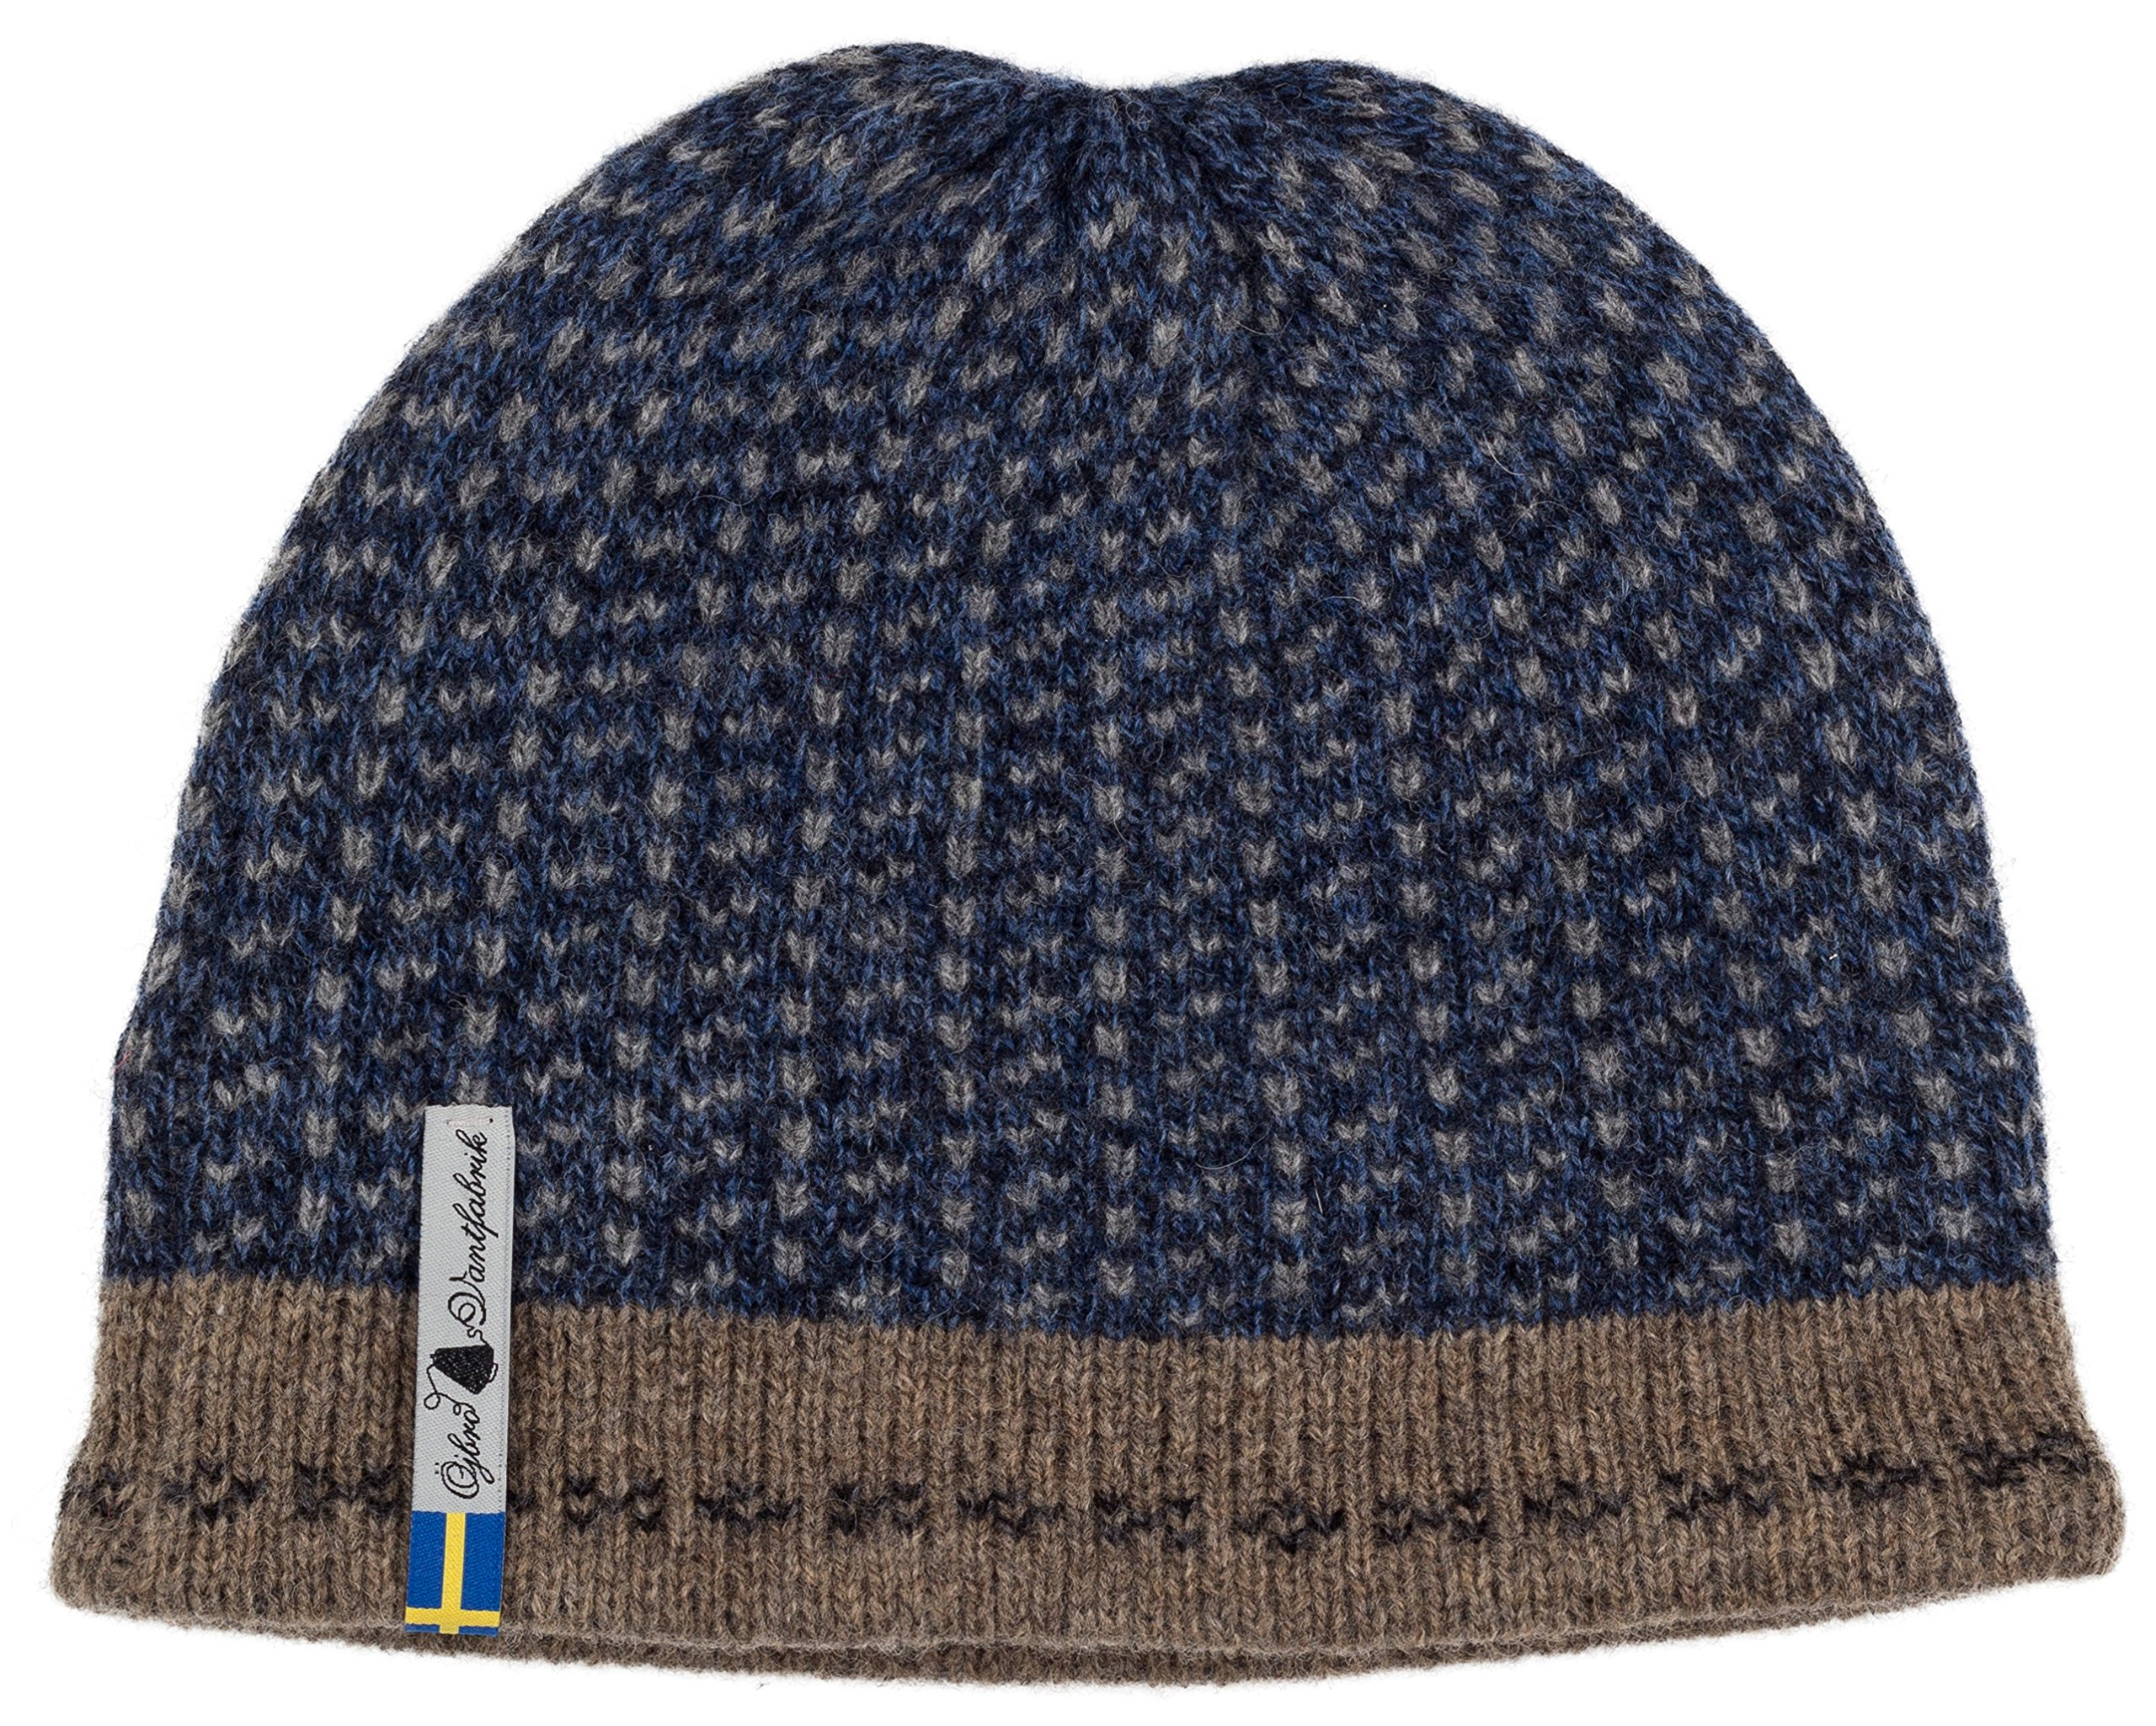 Swedish 100% Merino Wool Warm Soft and Thick Beanie Hat Cap (Skaftö Marin) by ÖJBRO VANTFABRIK (Image #1)